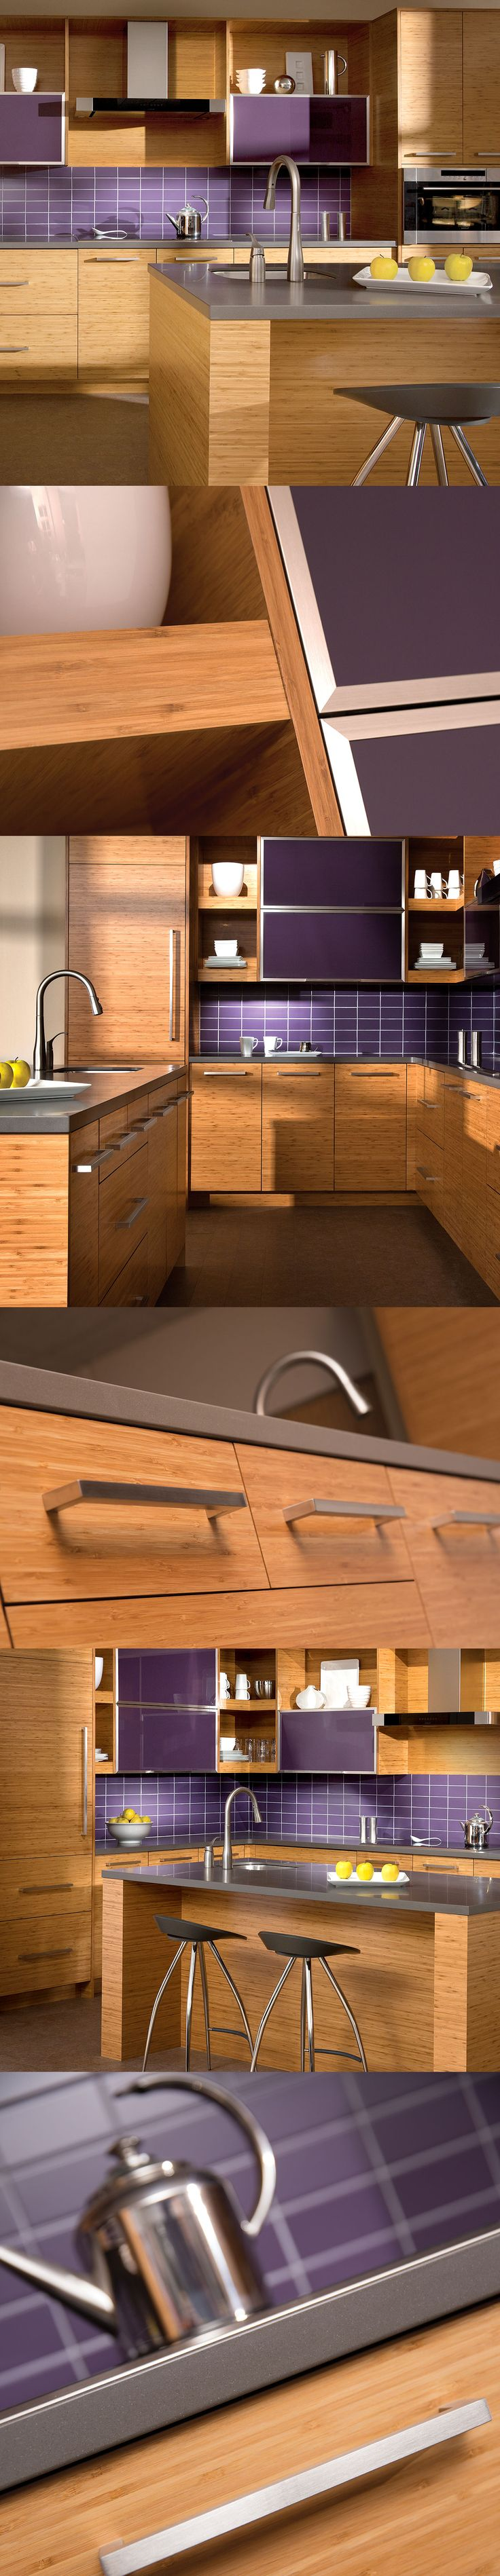 Contemporary Kitchen Design with Bamboo Cabinets - Dura Supreme Cabinetry - colors